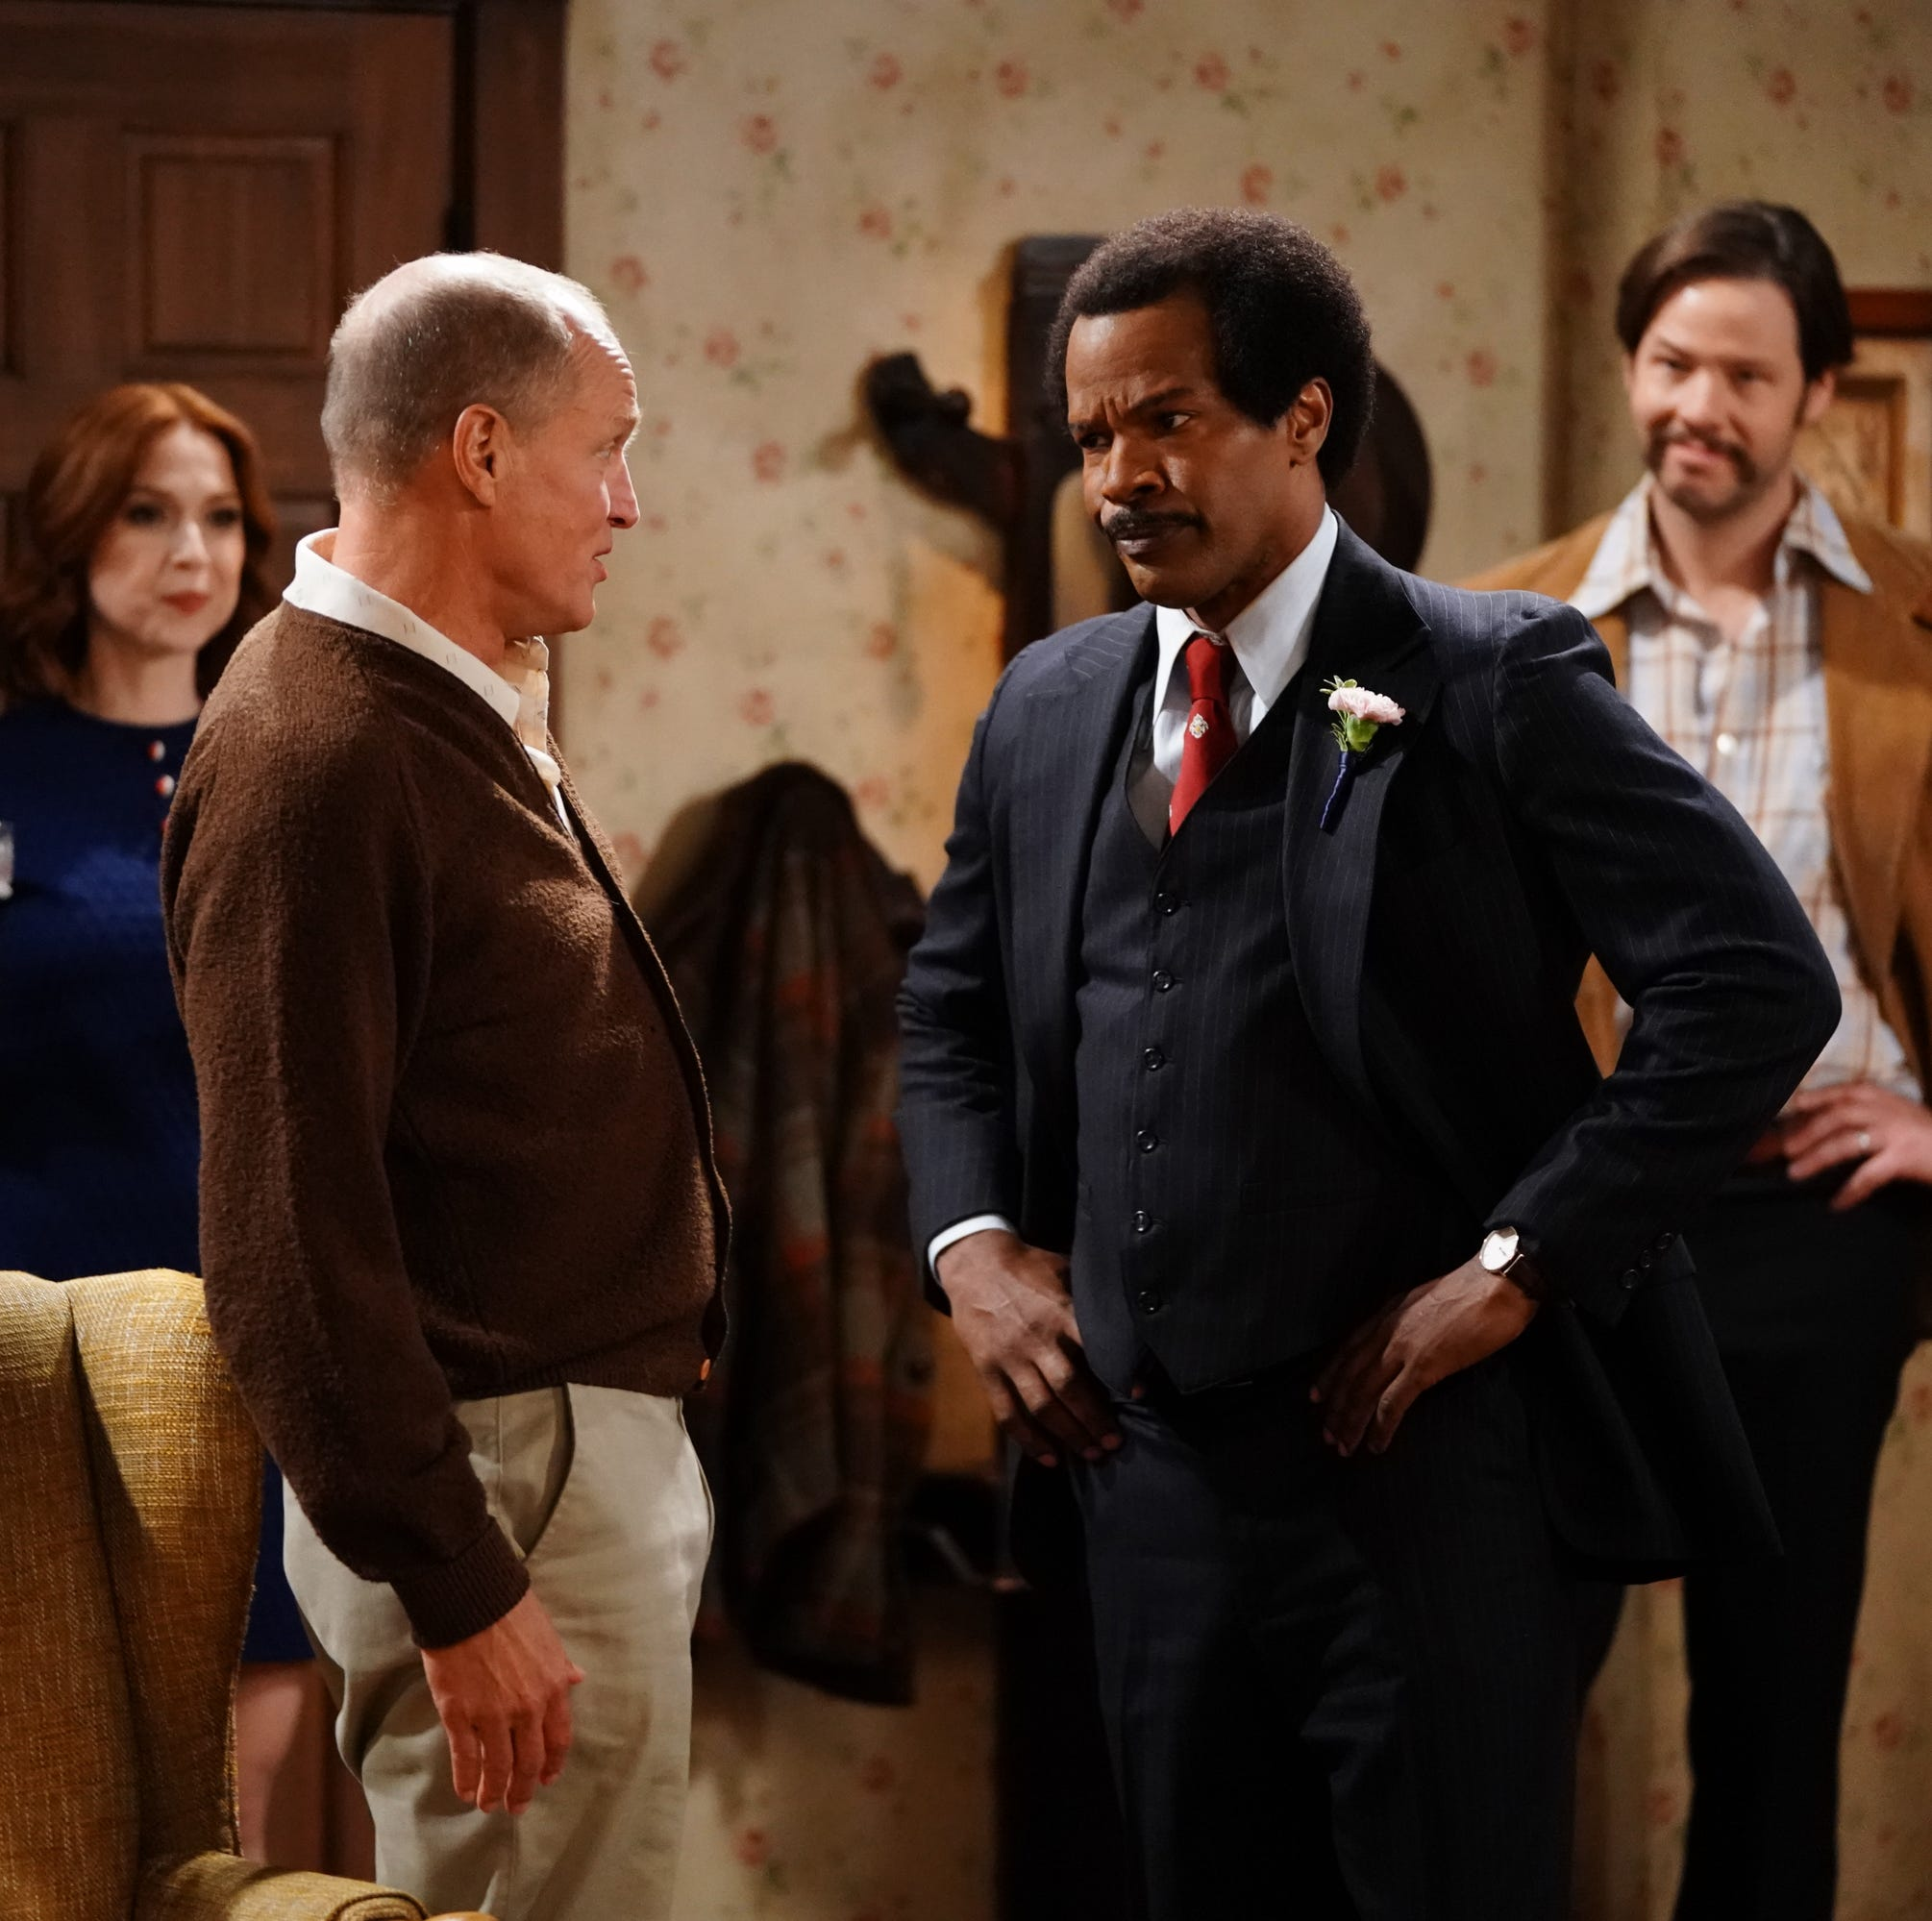 """LIVE IN FRONT OF A STUDIO AUDIENCE: NORMAN LEAR'S 'ALL IN THE FAMILY' AND 'THE JEFFERSONS' - ABC's late-night host Jimmy Kimmel presents a live, 90-minute prime-time event in tribute to classic television sitcoms. """"Live in Front of a Studio Audience: Norman Lear's 'All in the Family' and 'The Jeffersons'"""" teams Kimmel with television icon Norman Lear and executive producers Brent Miller, Will Ferrell, Adam McKay and Justin Theroux. This special, airing live WEDNESDAY, MAY 22 (8:00-9:33 p.m. EDT), on The ABC Television Network, will take viewers down memory lane, recreating an original episode from each of the Emmy(r) Award-winning series """"All in the Family"""" and """"The Jeffersons."""" This legendary night of television will be hosted by Lear and Kimmel, and directed by 10-time Emmy winner James Burrows. (ABC/Eric McCandless)ELLIE KEMPER, WOODY HARRELSON, JAMIE FOXX, IKE BARINHOLTZ"""